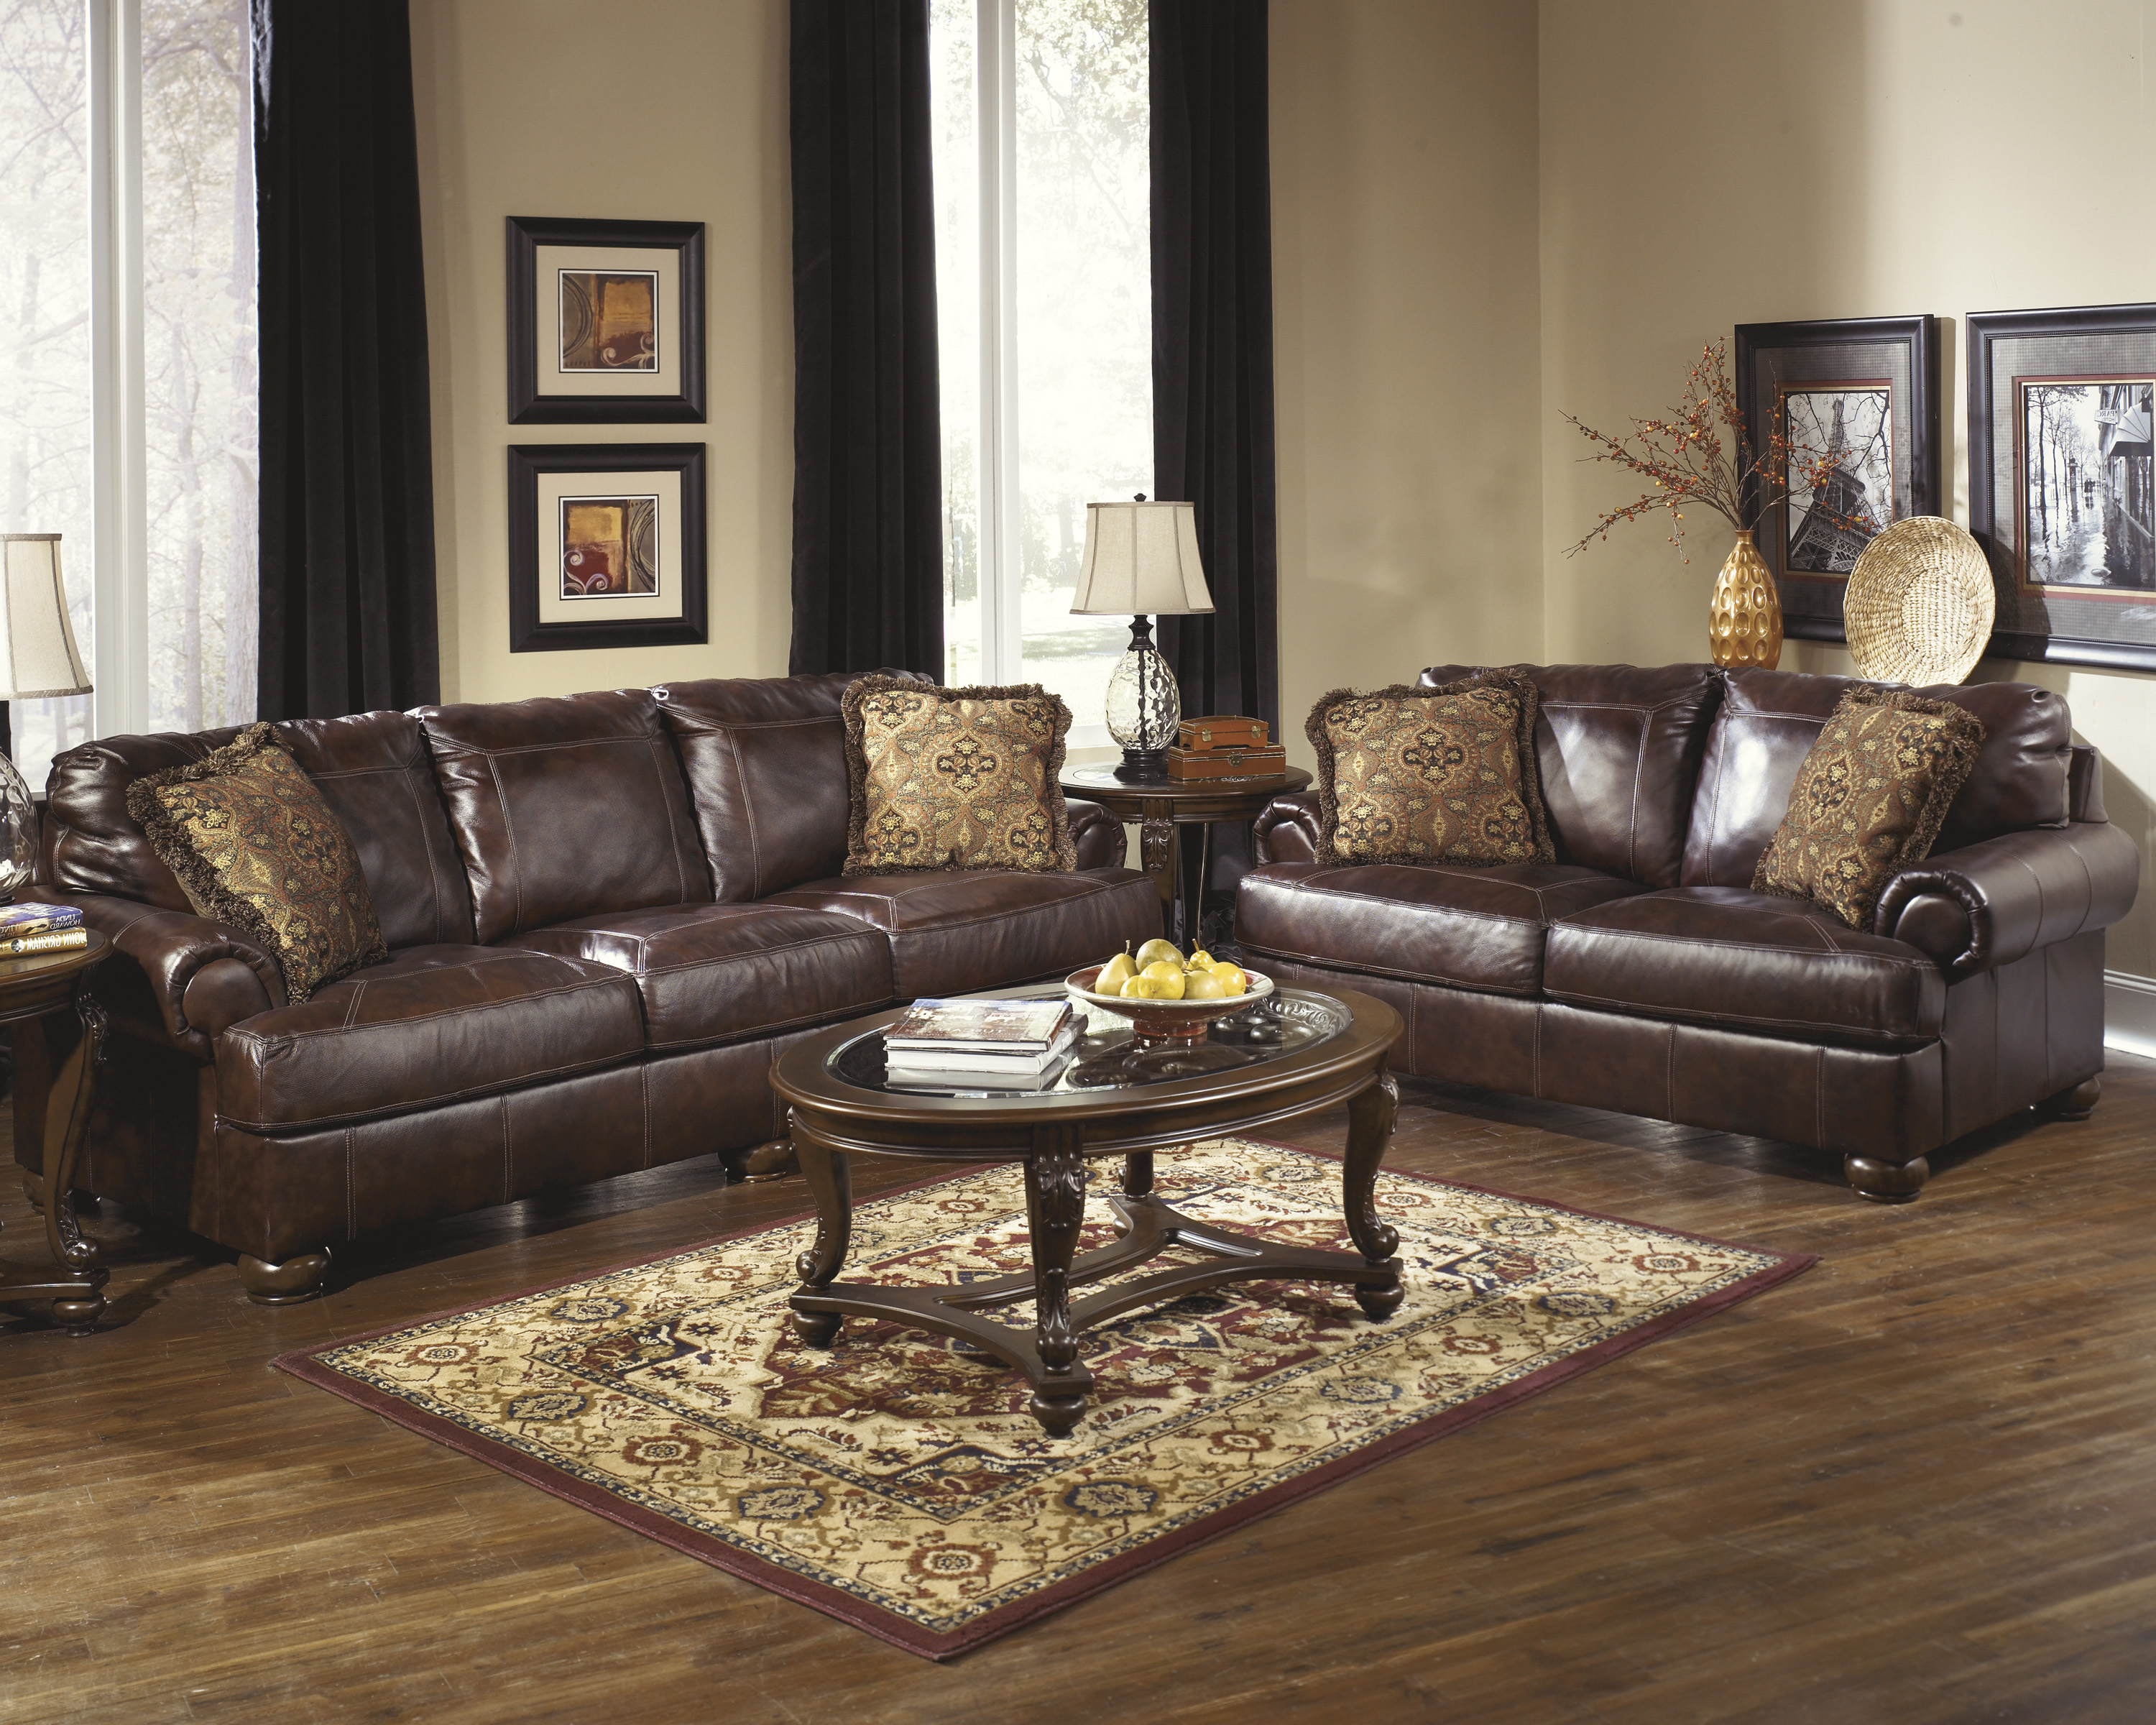 Recent Cheap Ashley Furniture Leather Sofa Sets In Glendale, Ca Regarding Living Room Sofas And Chairs (Gallery 14 of 20)